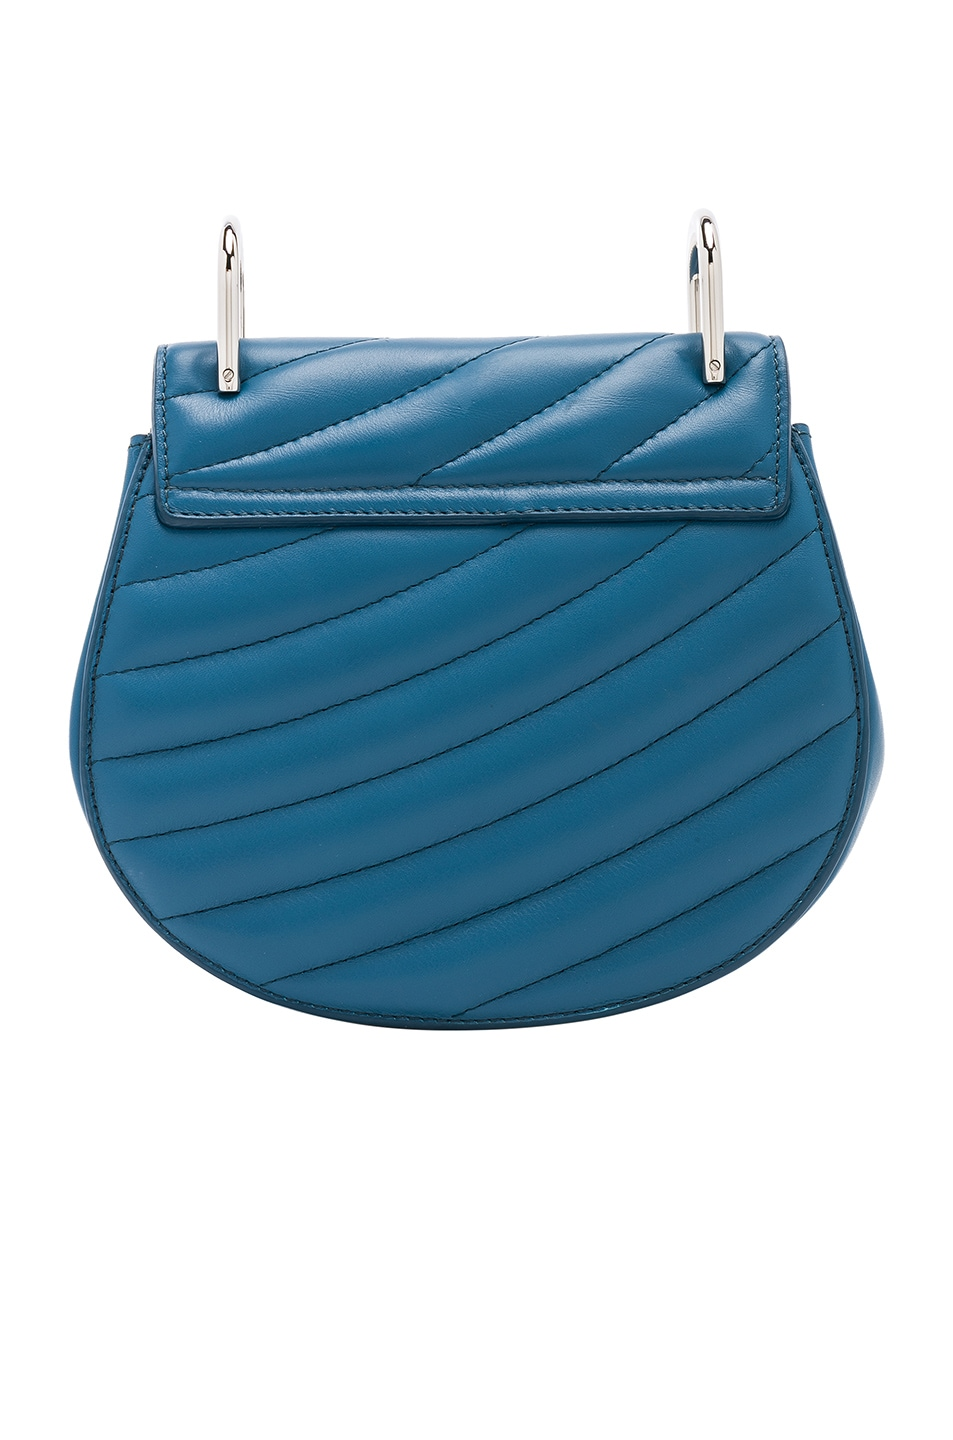 Image 3 of Chloe Mini Drew Bijou Quilted Smooth Calfskin Shoulder Bag in Vinyl Blue & Silver